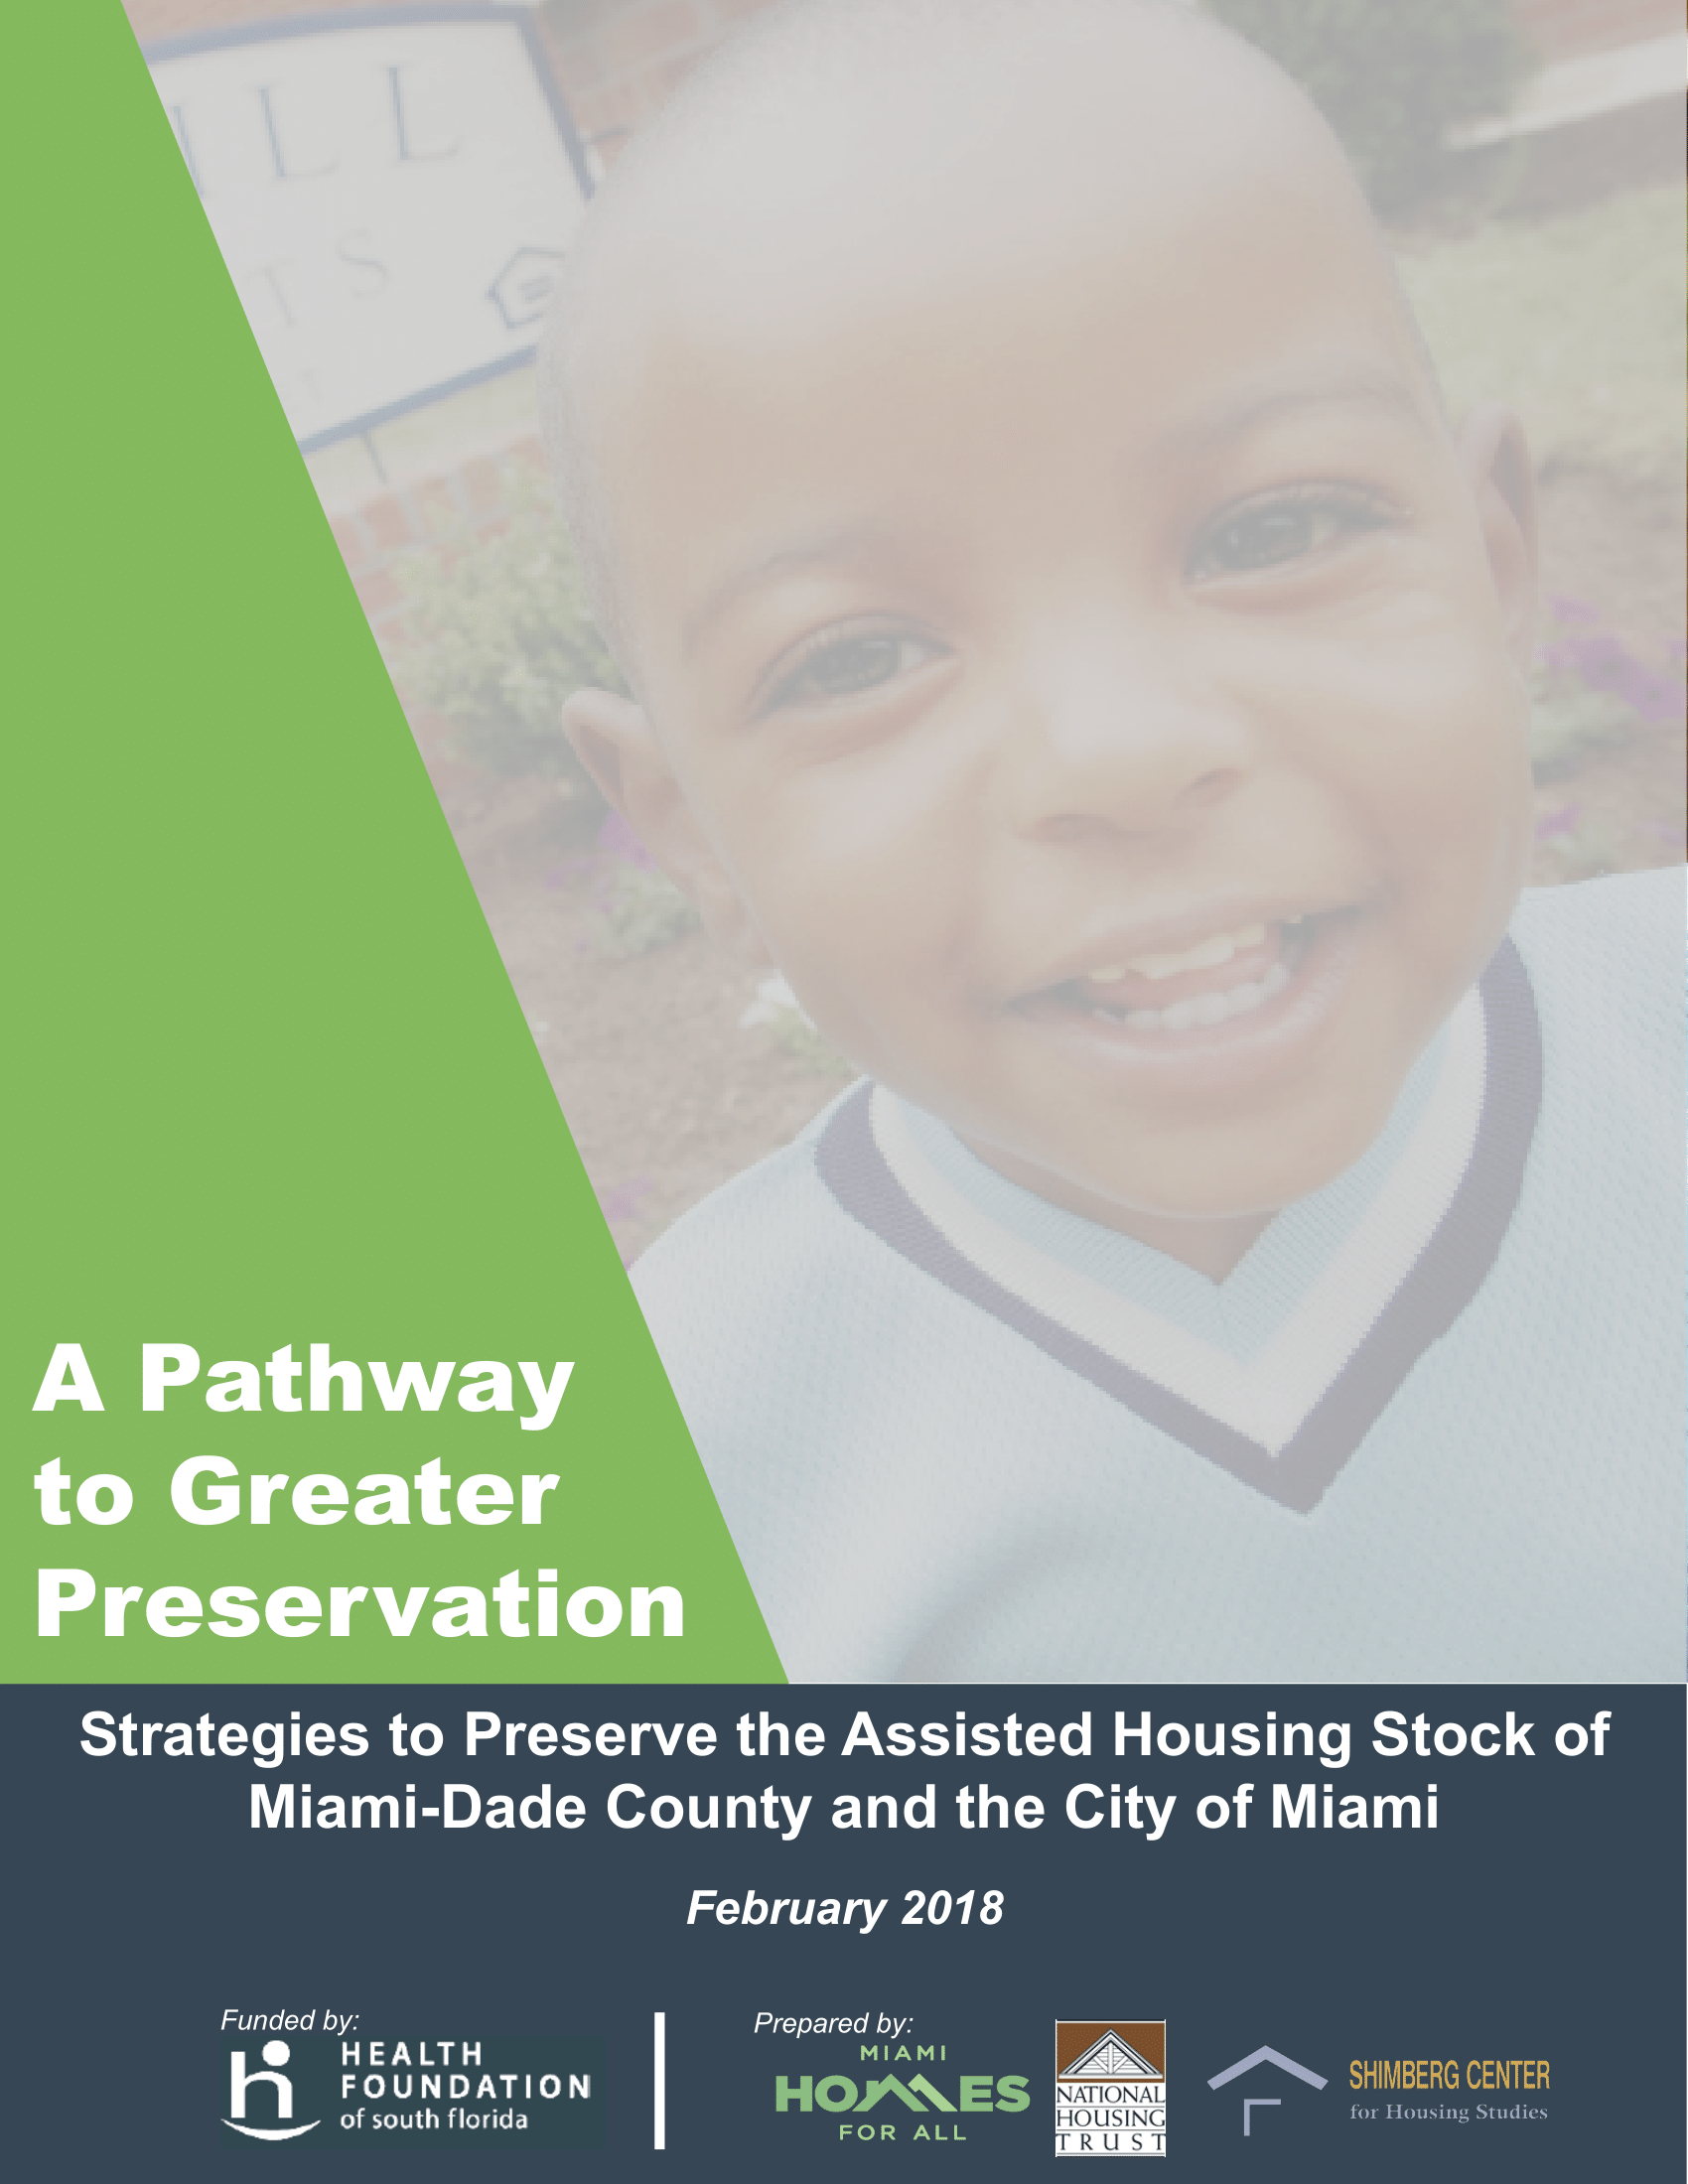 A Pathway to Greater Preservation - February 2018-01.png